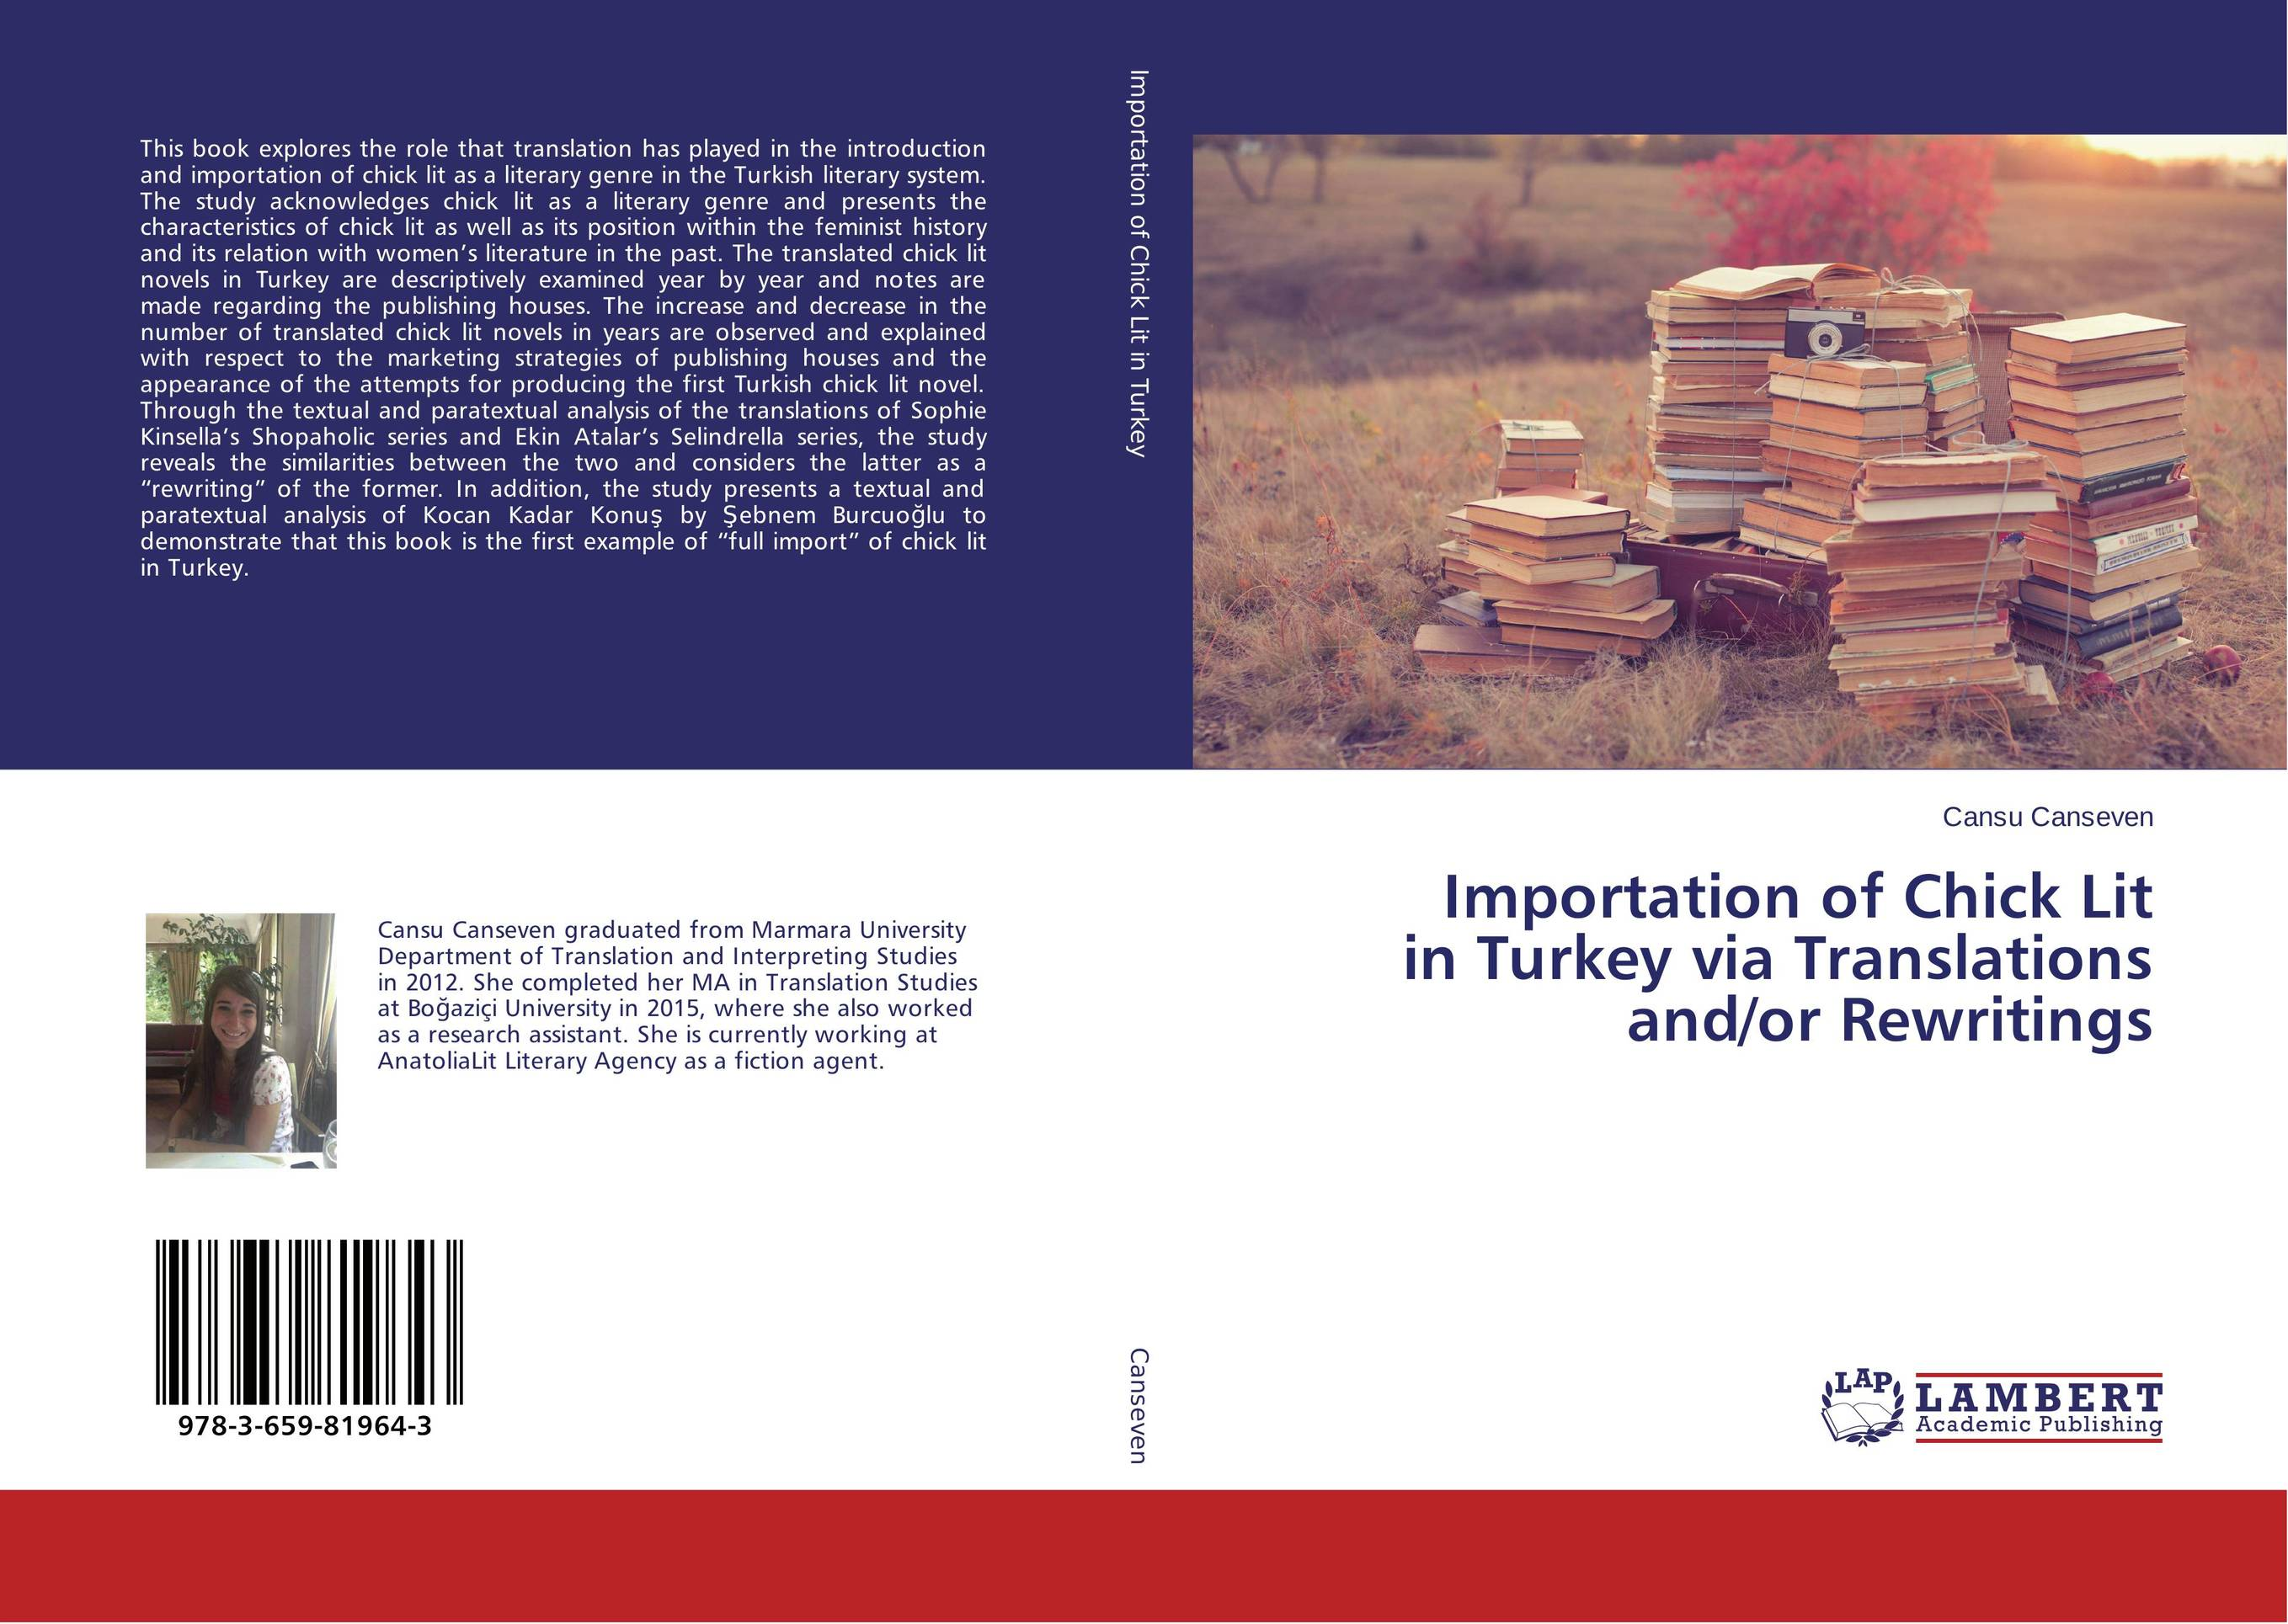 Importation of Chick Lit in Turkey via Translations and/or Rewritings atlas of chick development